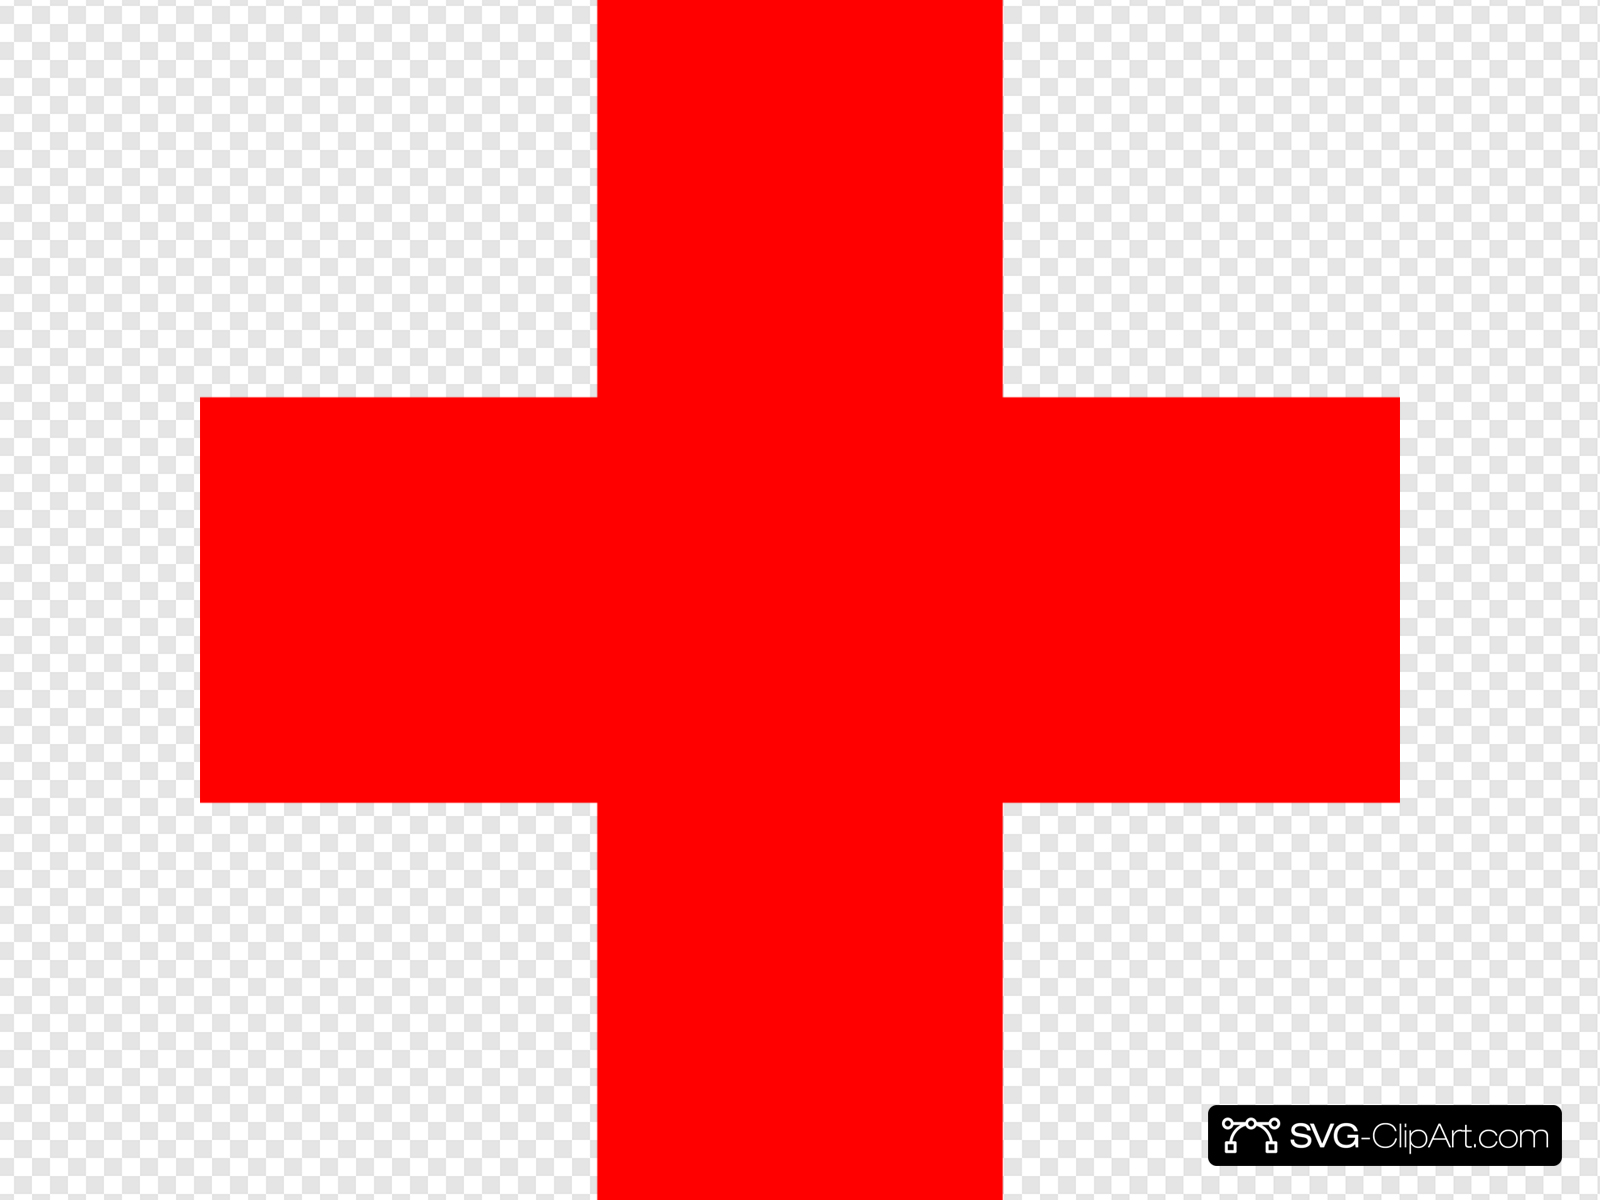 Red Cross Logo Clip art, Icon and SVG.